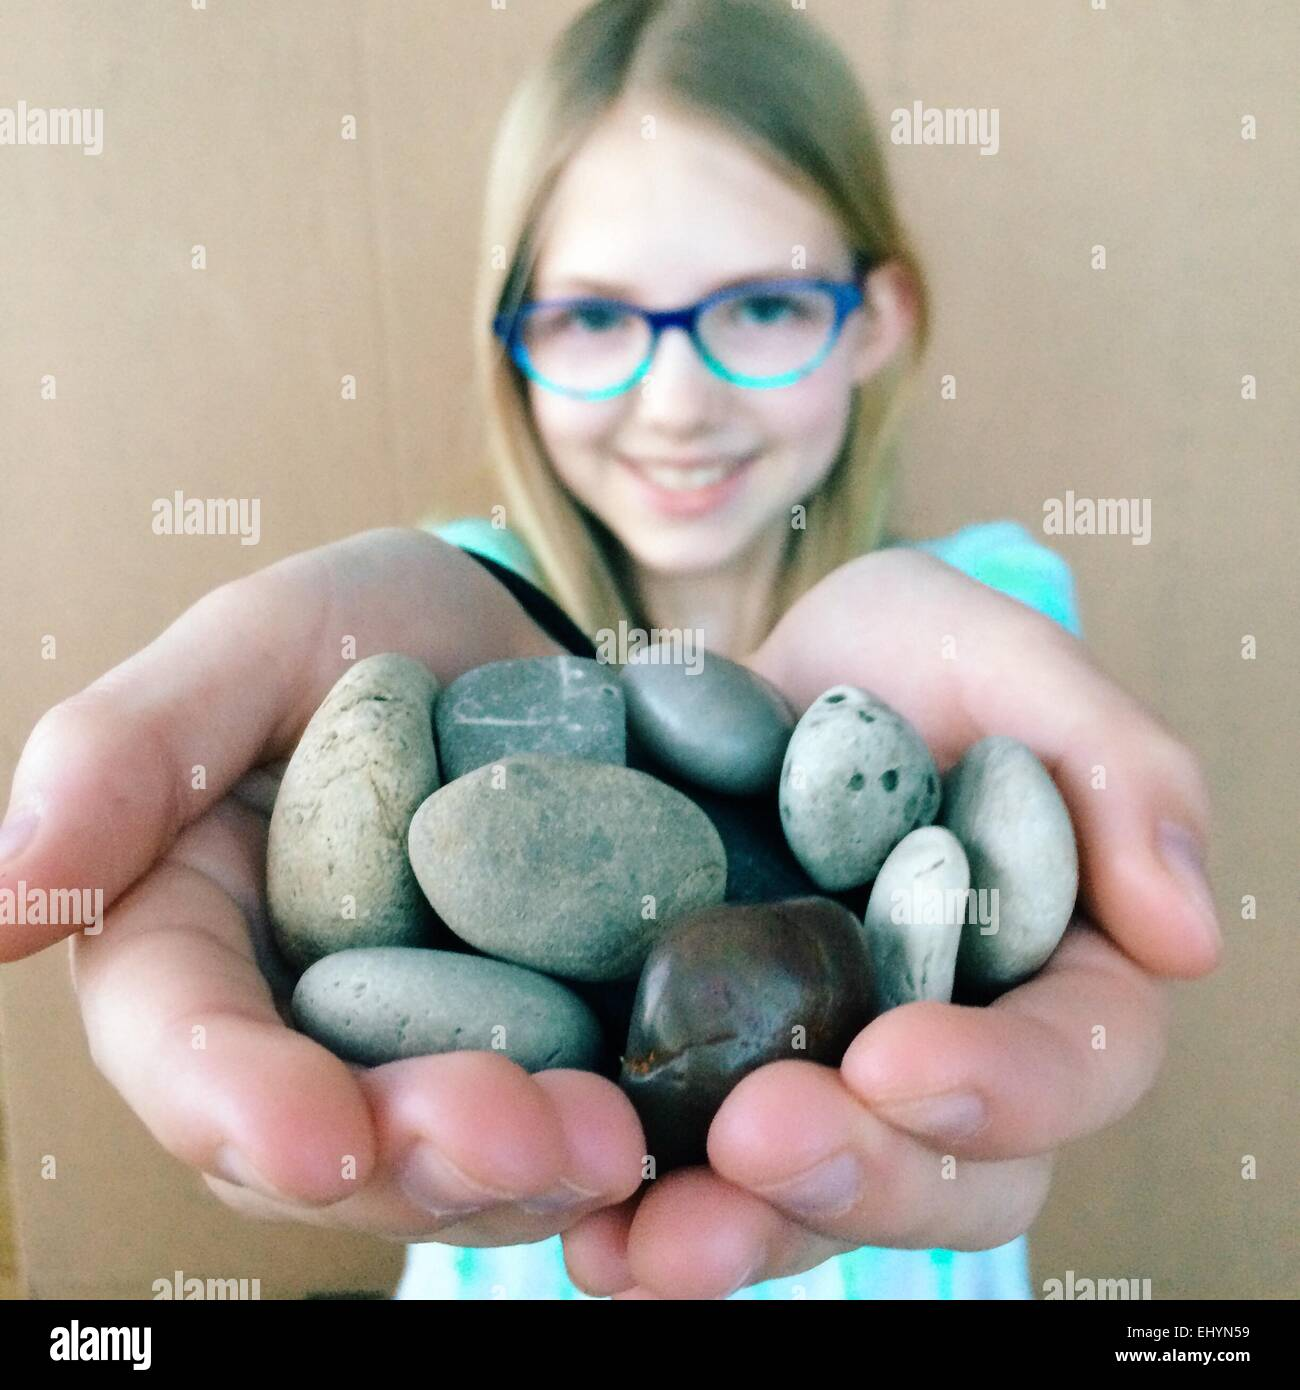 Girl holding a collection of rocks - Stock Image